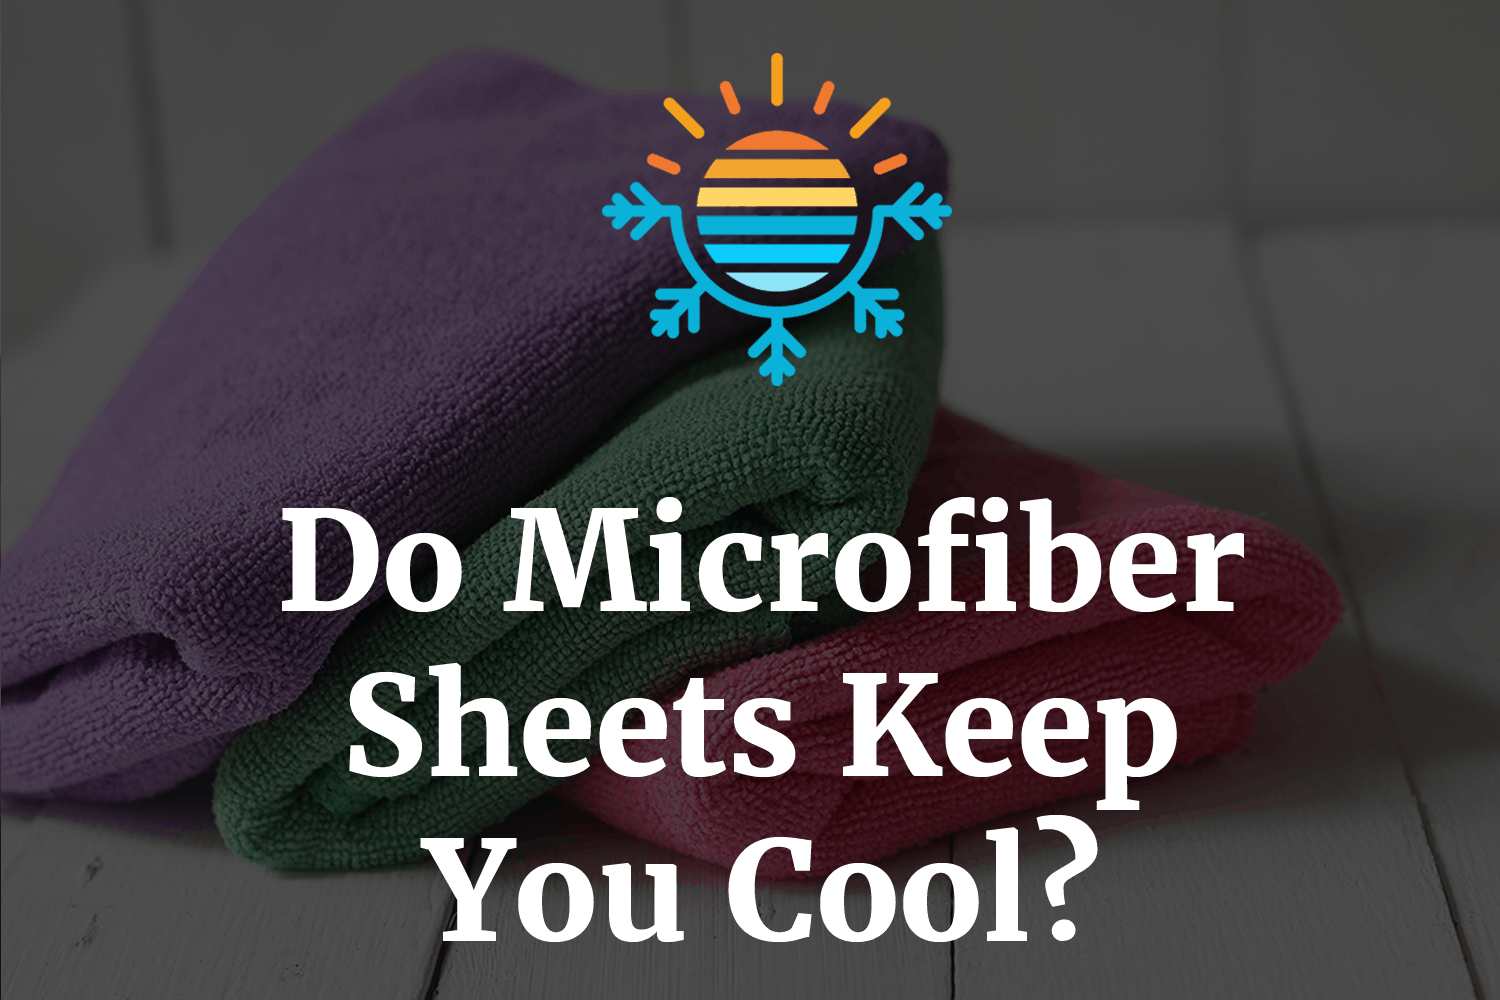 Do Microfiber Sheets Keep You Cool?